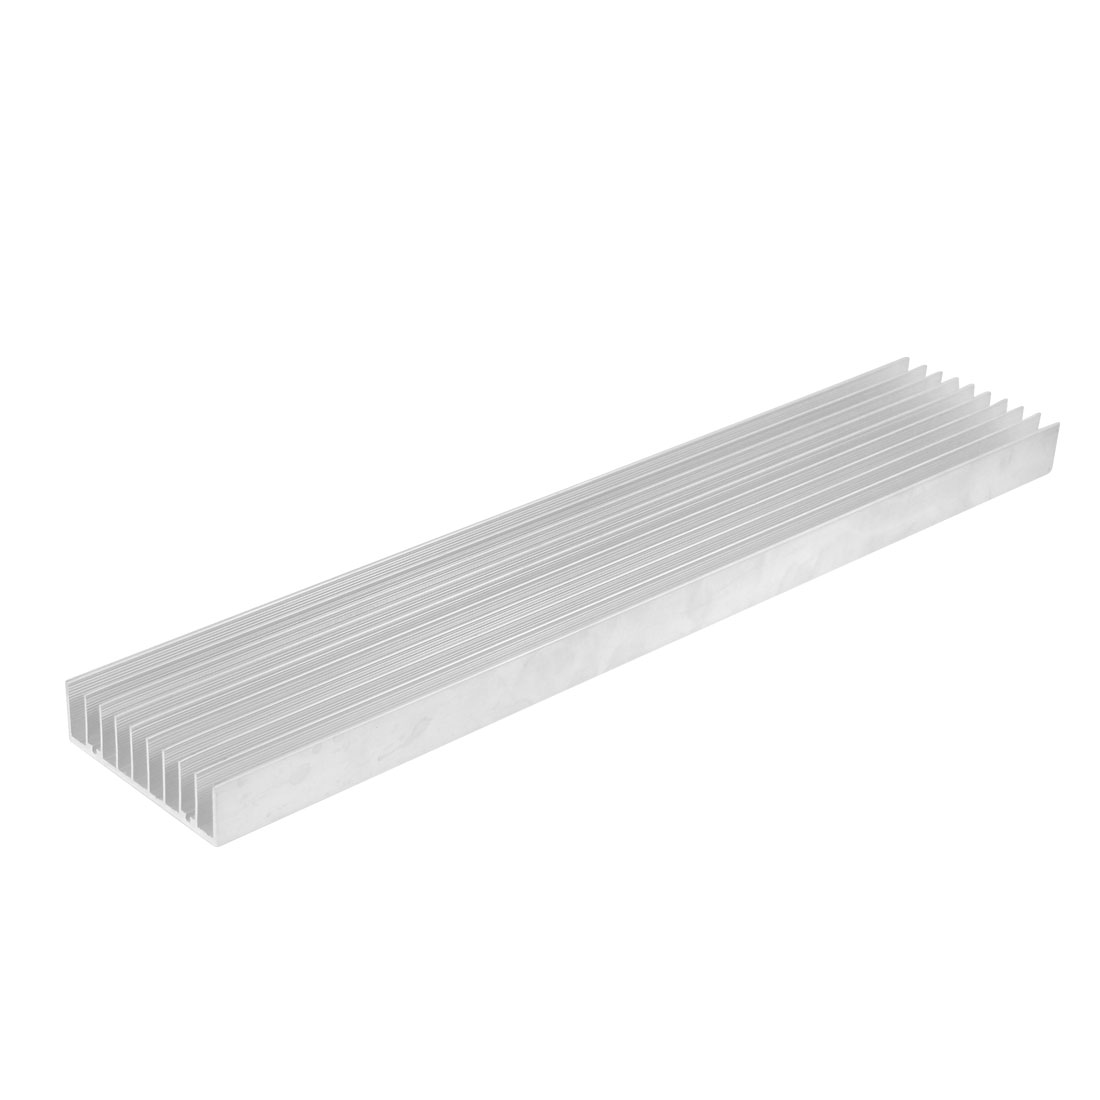 Silver White 400mmx75mmx22mm LED Heat Sink Aluminum Cooling Fin